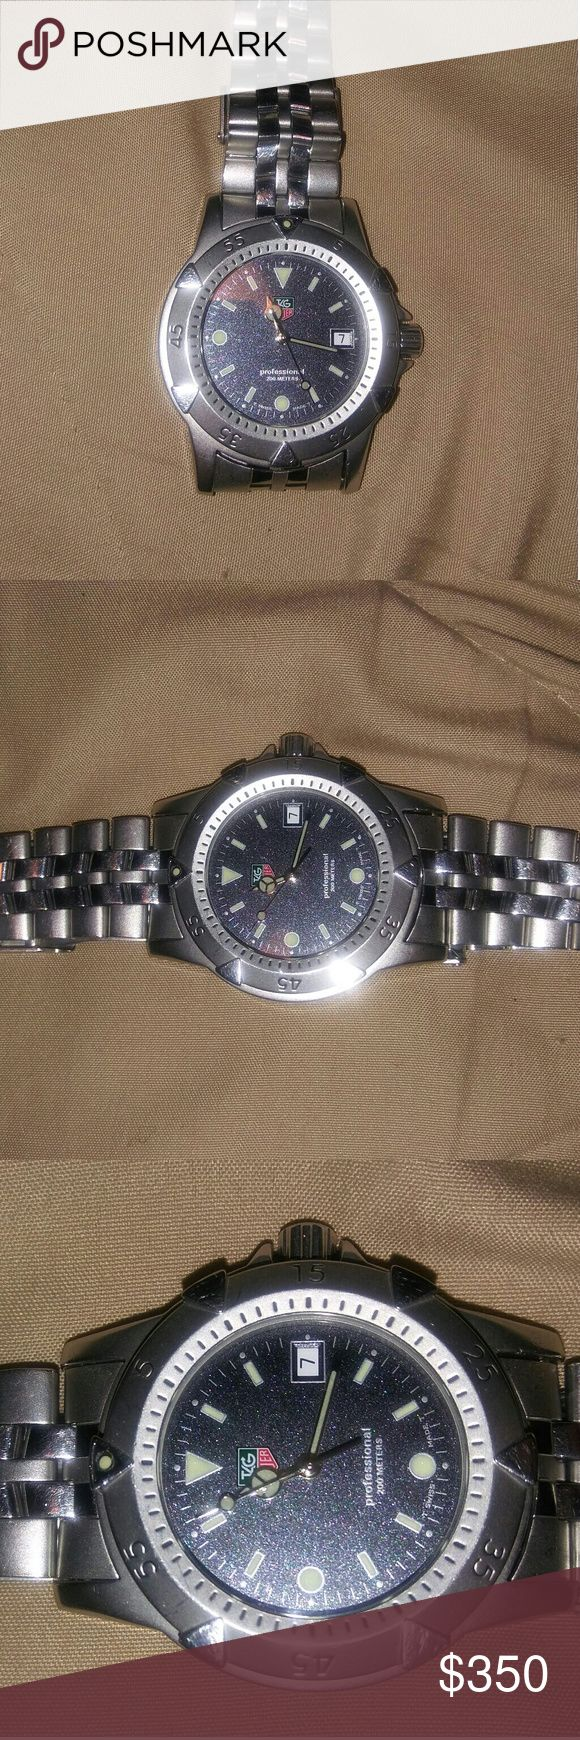 Tag Heuer Professional 200 Meter Watch. Mint Tag Heuer Professional 200 Meter Watch. Mint Condition. All Original. Black Granite Face. New Battery And Crystal. This is listed on Ebay for $450.00 plus all day long so this is an amazing deal.  Serious Buyers Only Please!  More Pictures + Video Upon Request Will Ship Same Day Unless Post Office Is Closed For A Holiday! Tag Heuer Accessories Jewelry